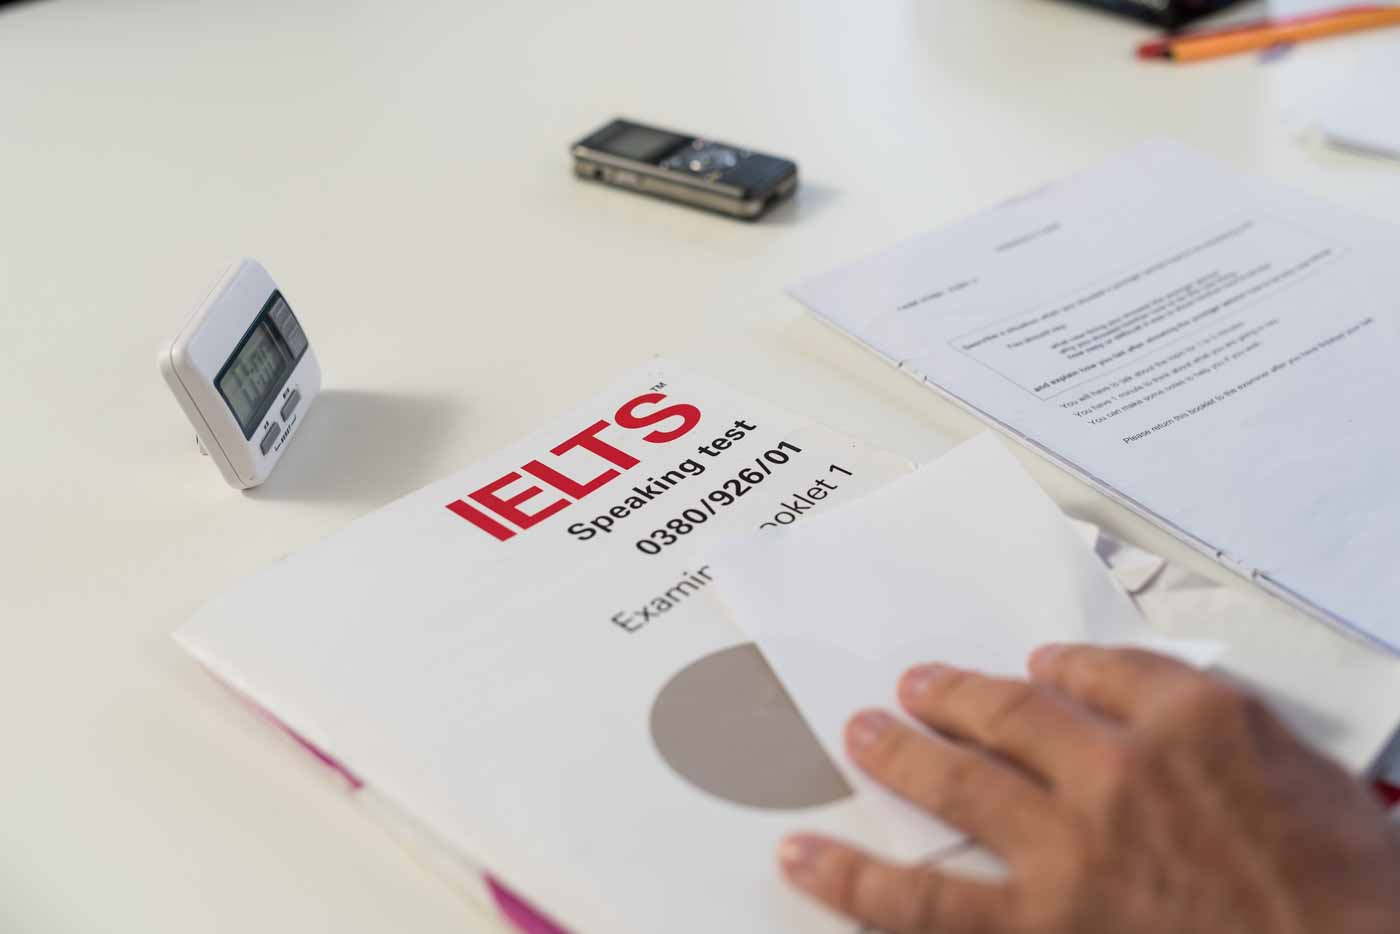 Reasons to take the IELTS test